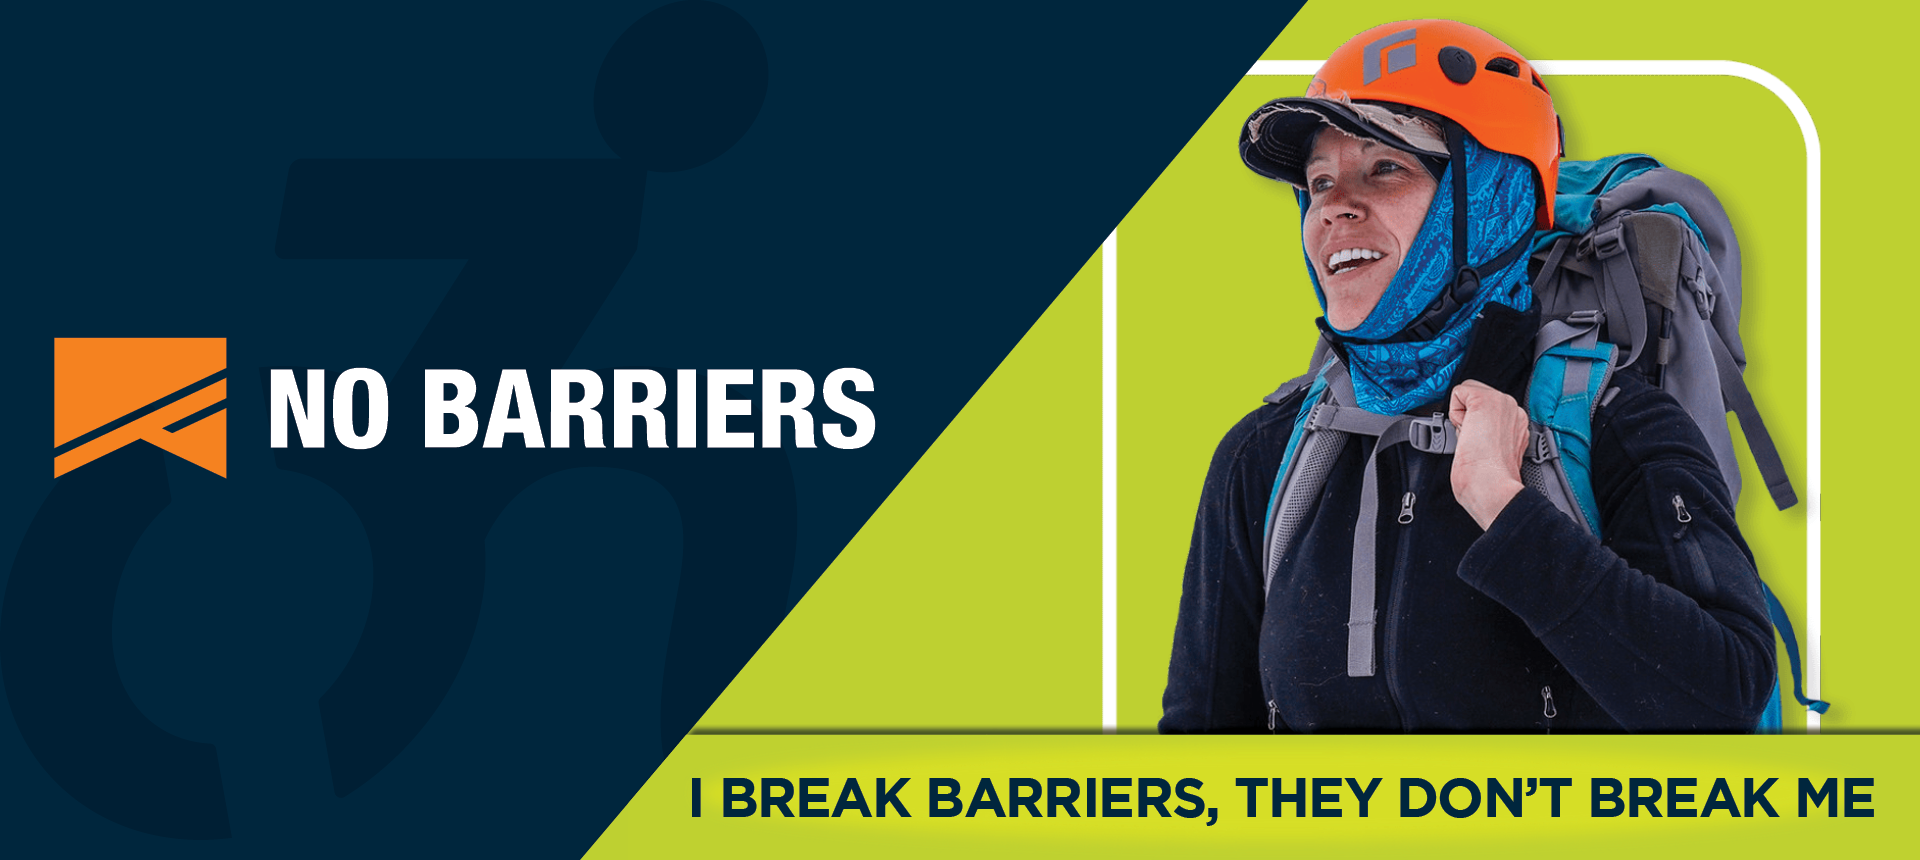 On left side of image, the No Barriers logo. On right side of the image, an older caucasian woman wearing a high-vis orange rock climbing helmet, a backpacking backpack and hiking attire. Underneath, the image reads: I BREAK BARRIERS, THEY DON'T BREAK ME.